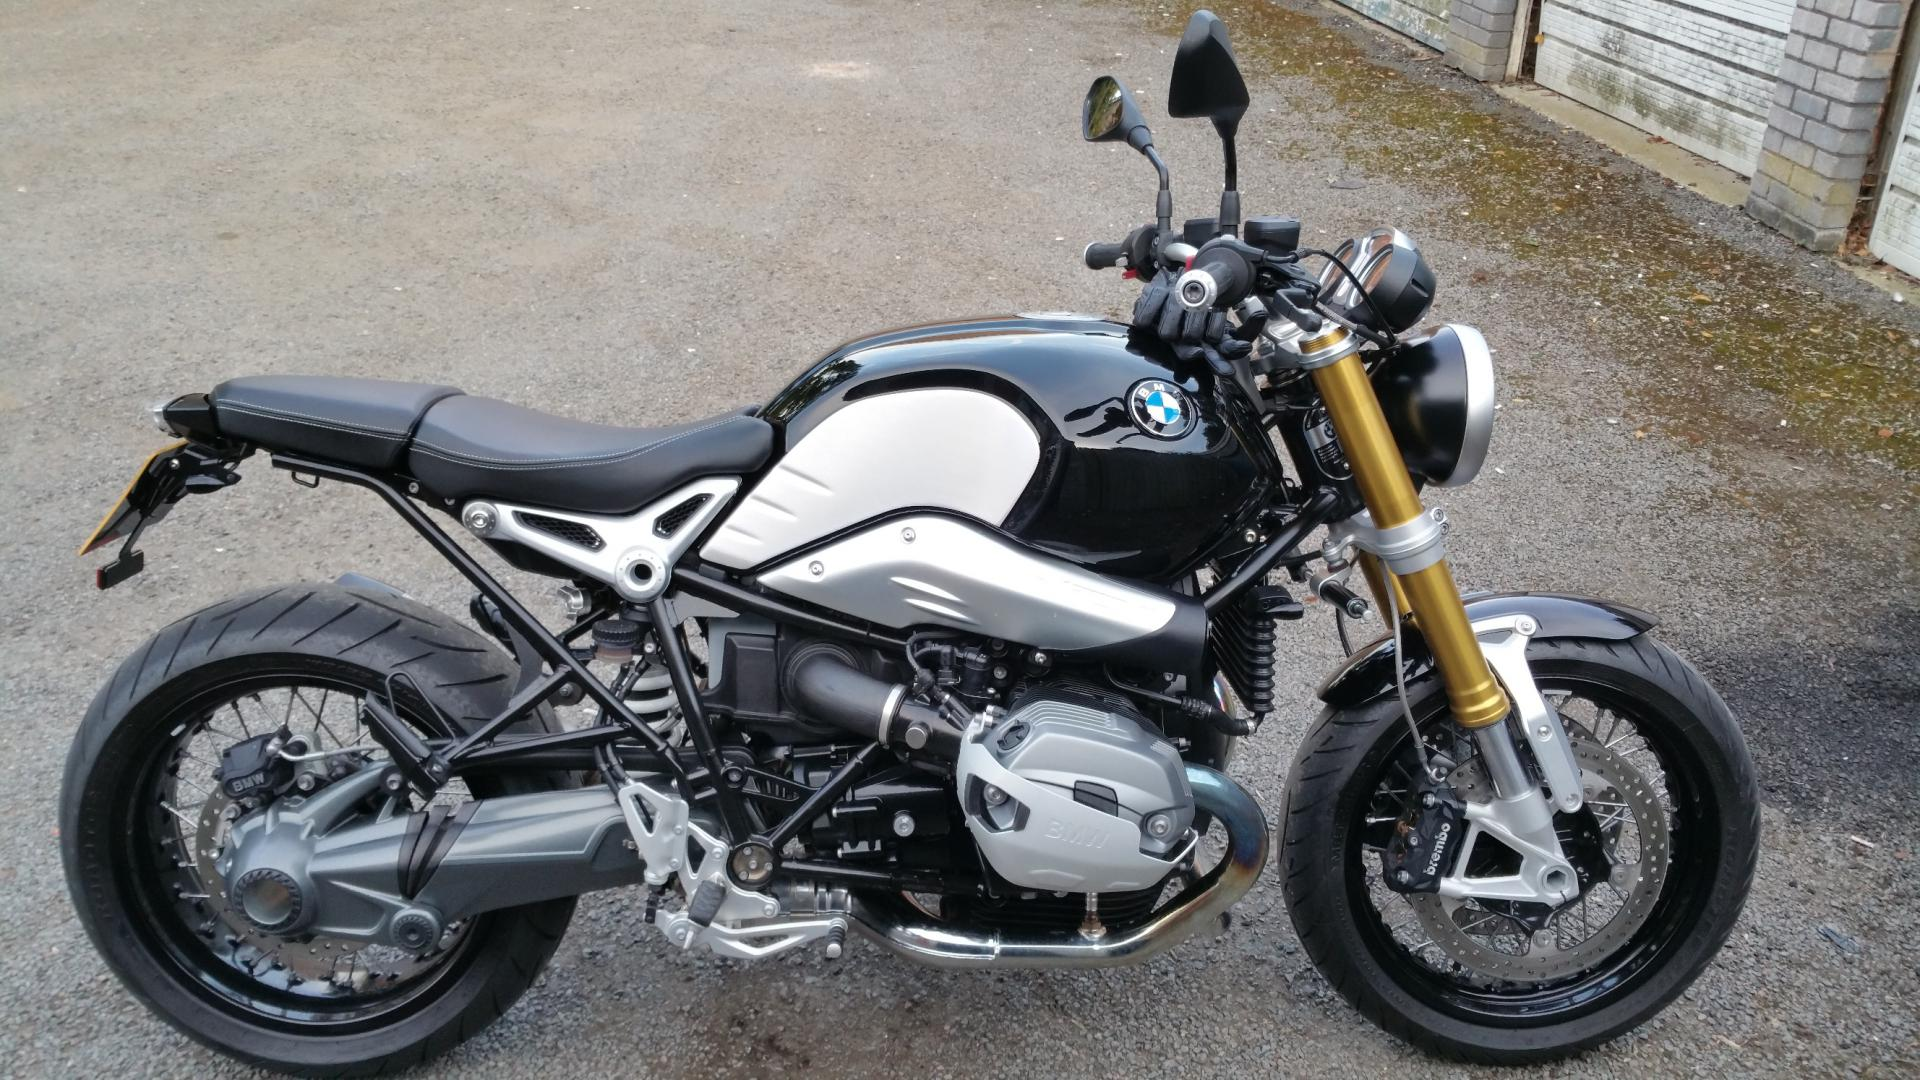 fs west london uk 2014 r nine t bmw ninet forum. Black Bedroom Furniture Sets. Home Design Ideas